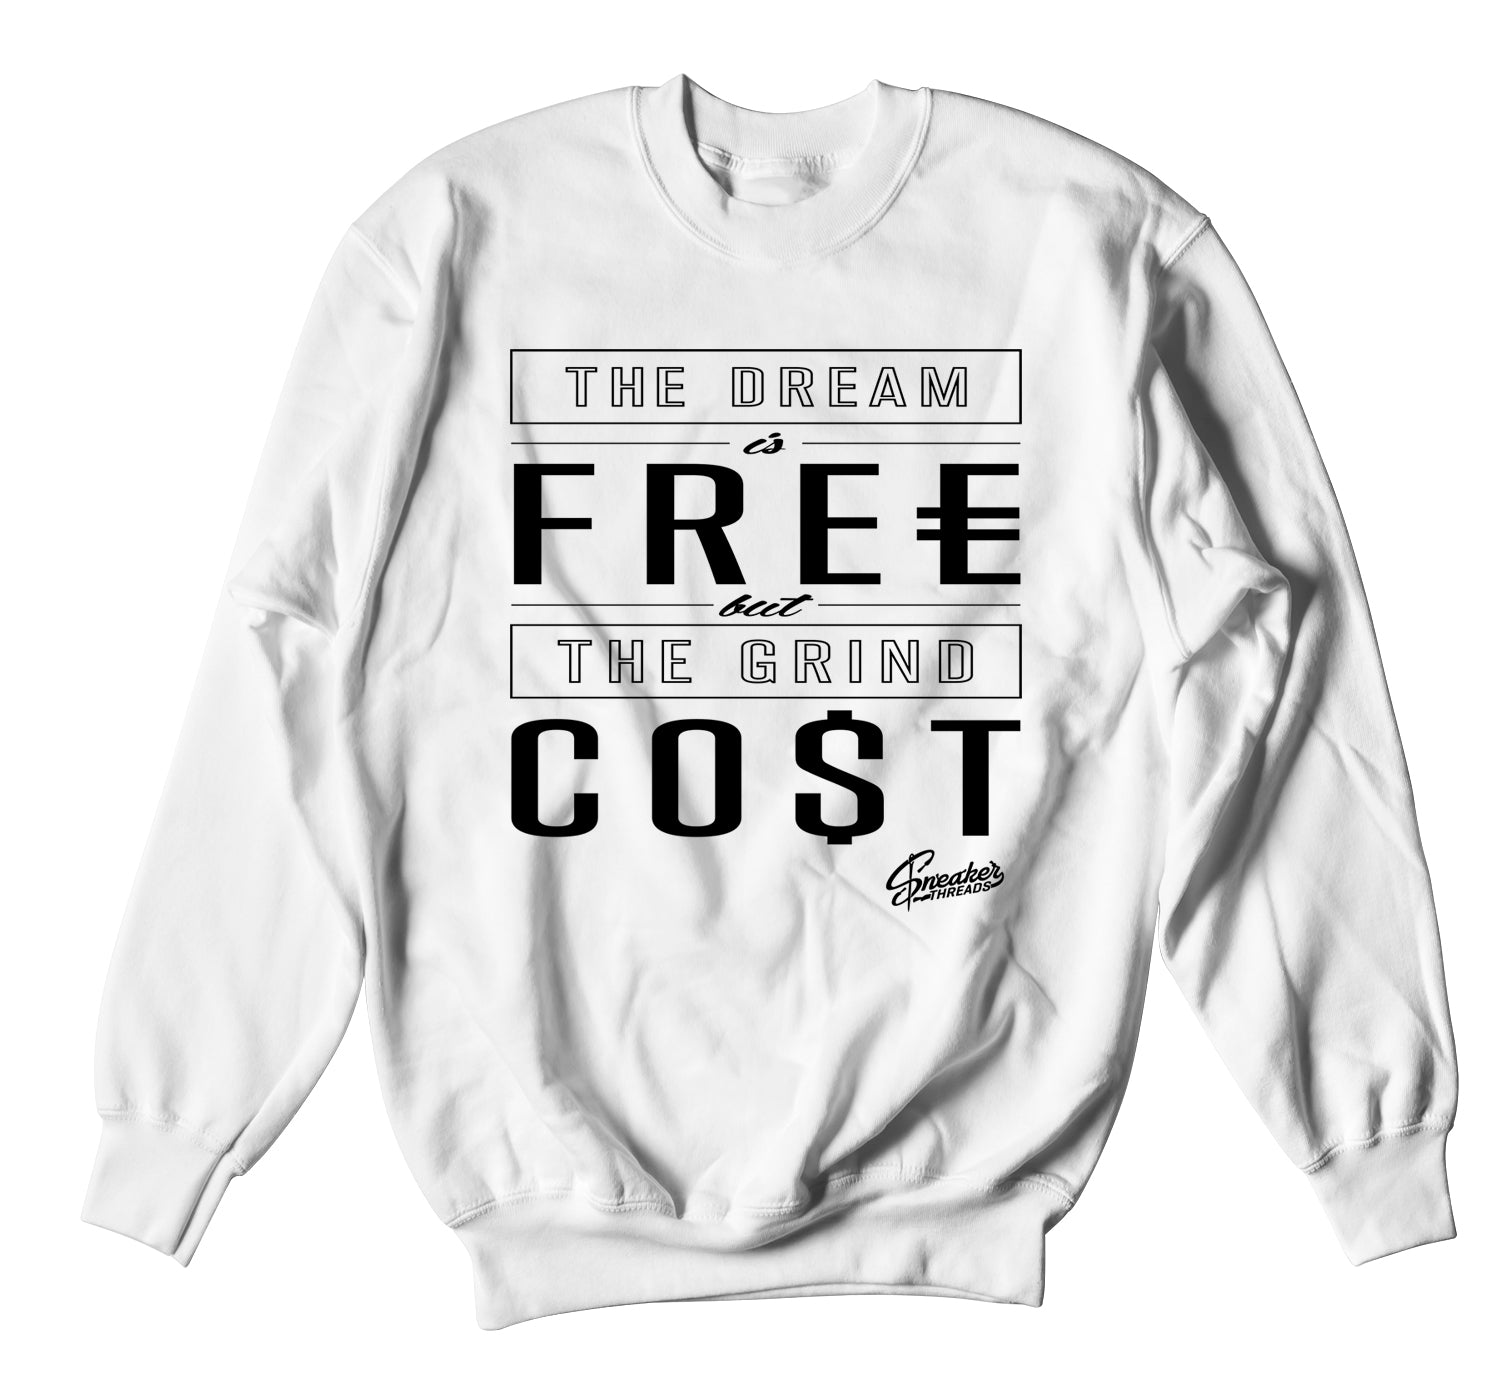 crewneck sweater collection for men made to match the foamposite sneaker collection